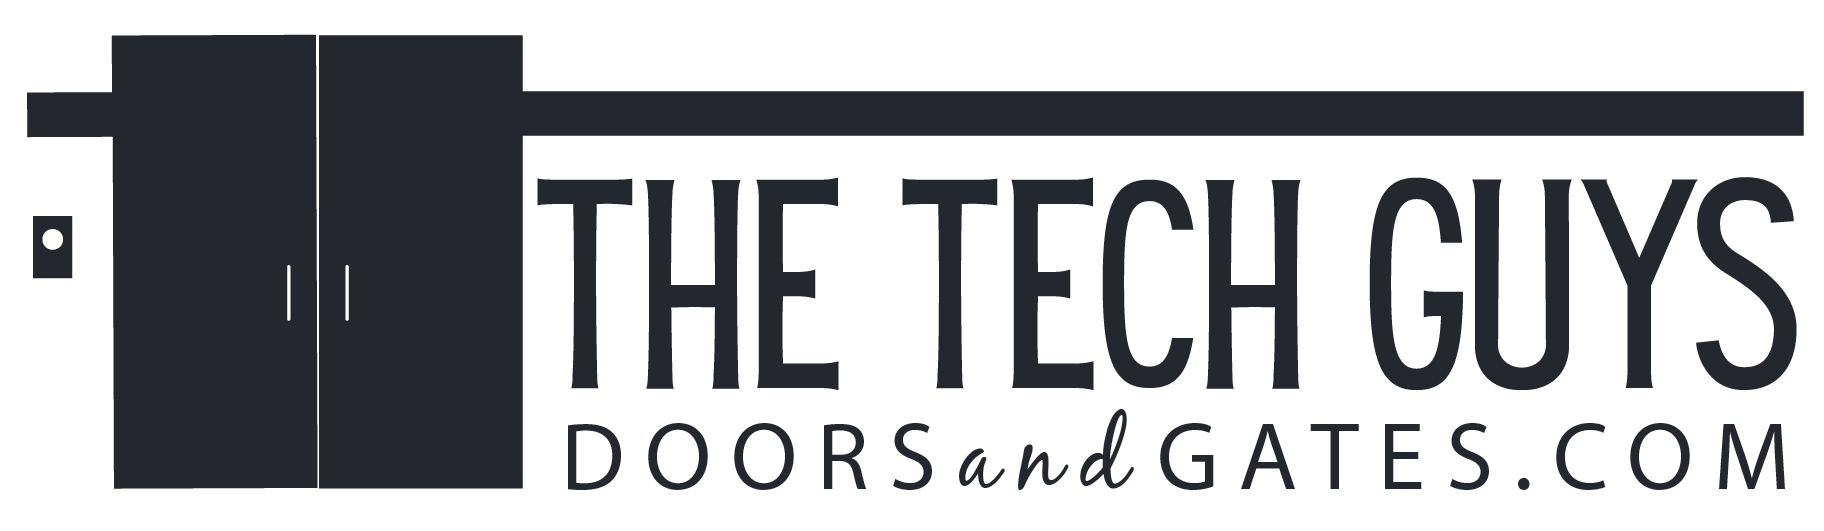 [UPDATED]: The Tech Guys Doors and Gates Electric Gate Repair Santa Monica Offers Durable and Versatile Door and Gate Options Available 1